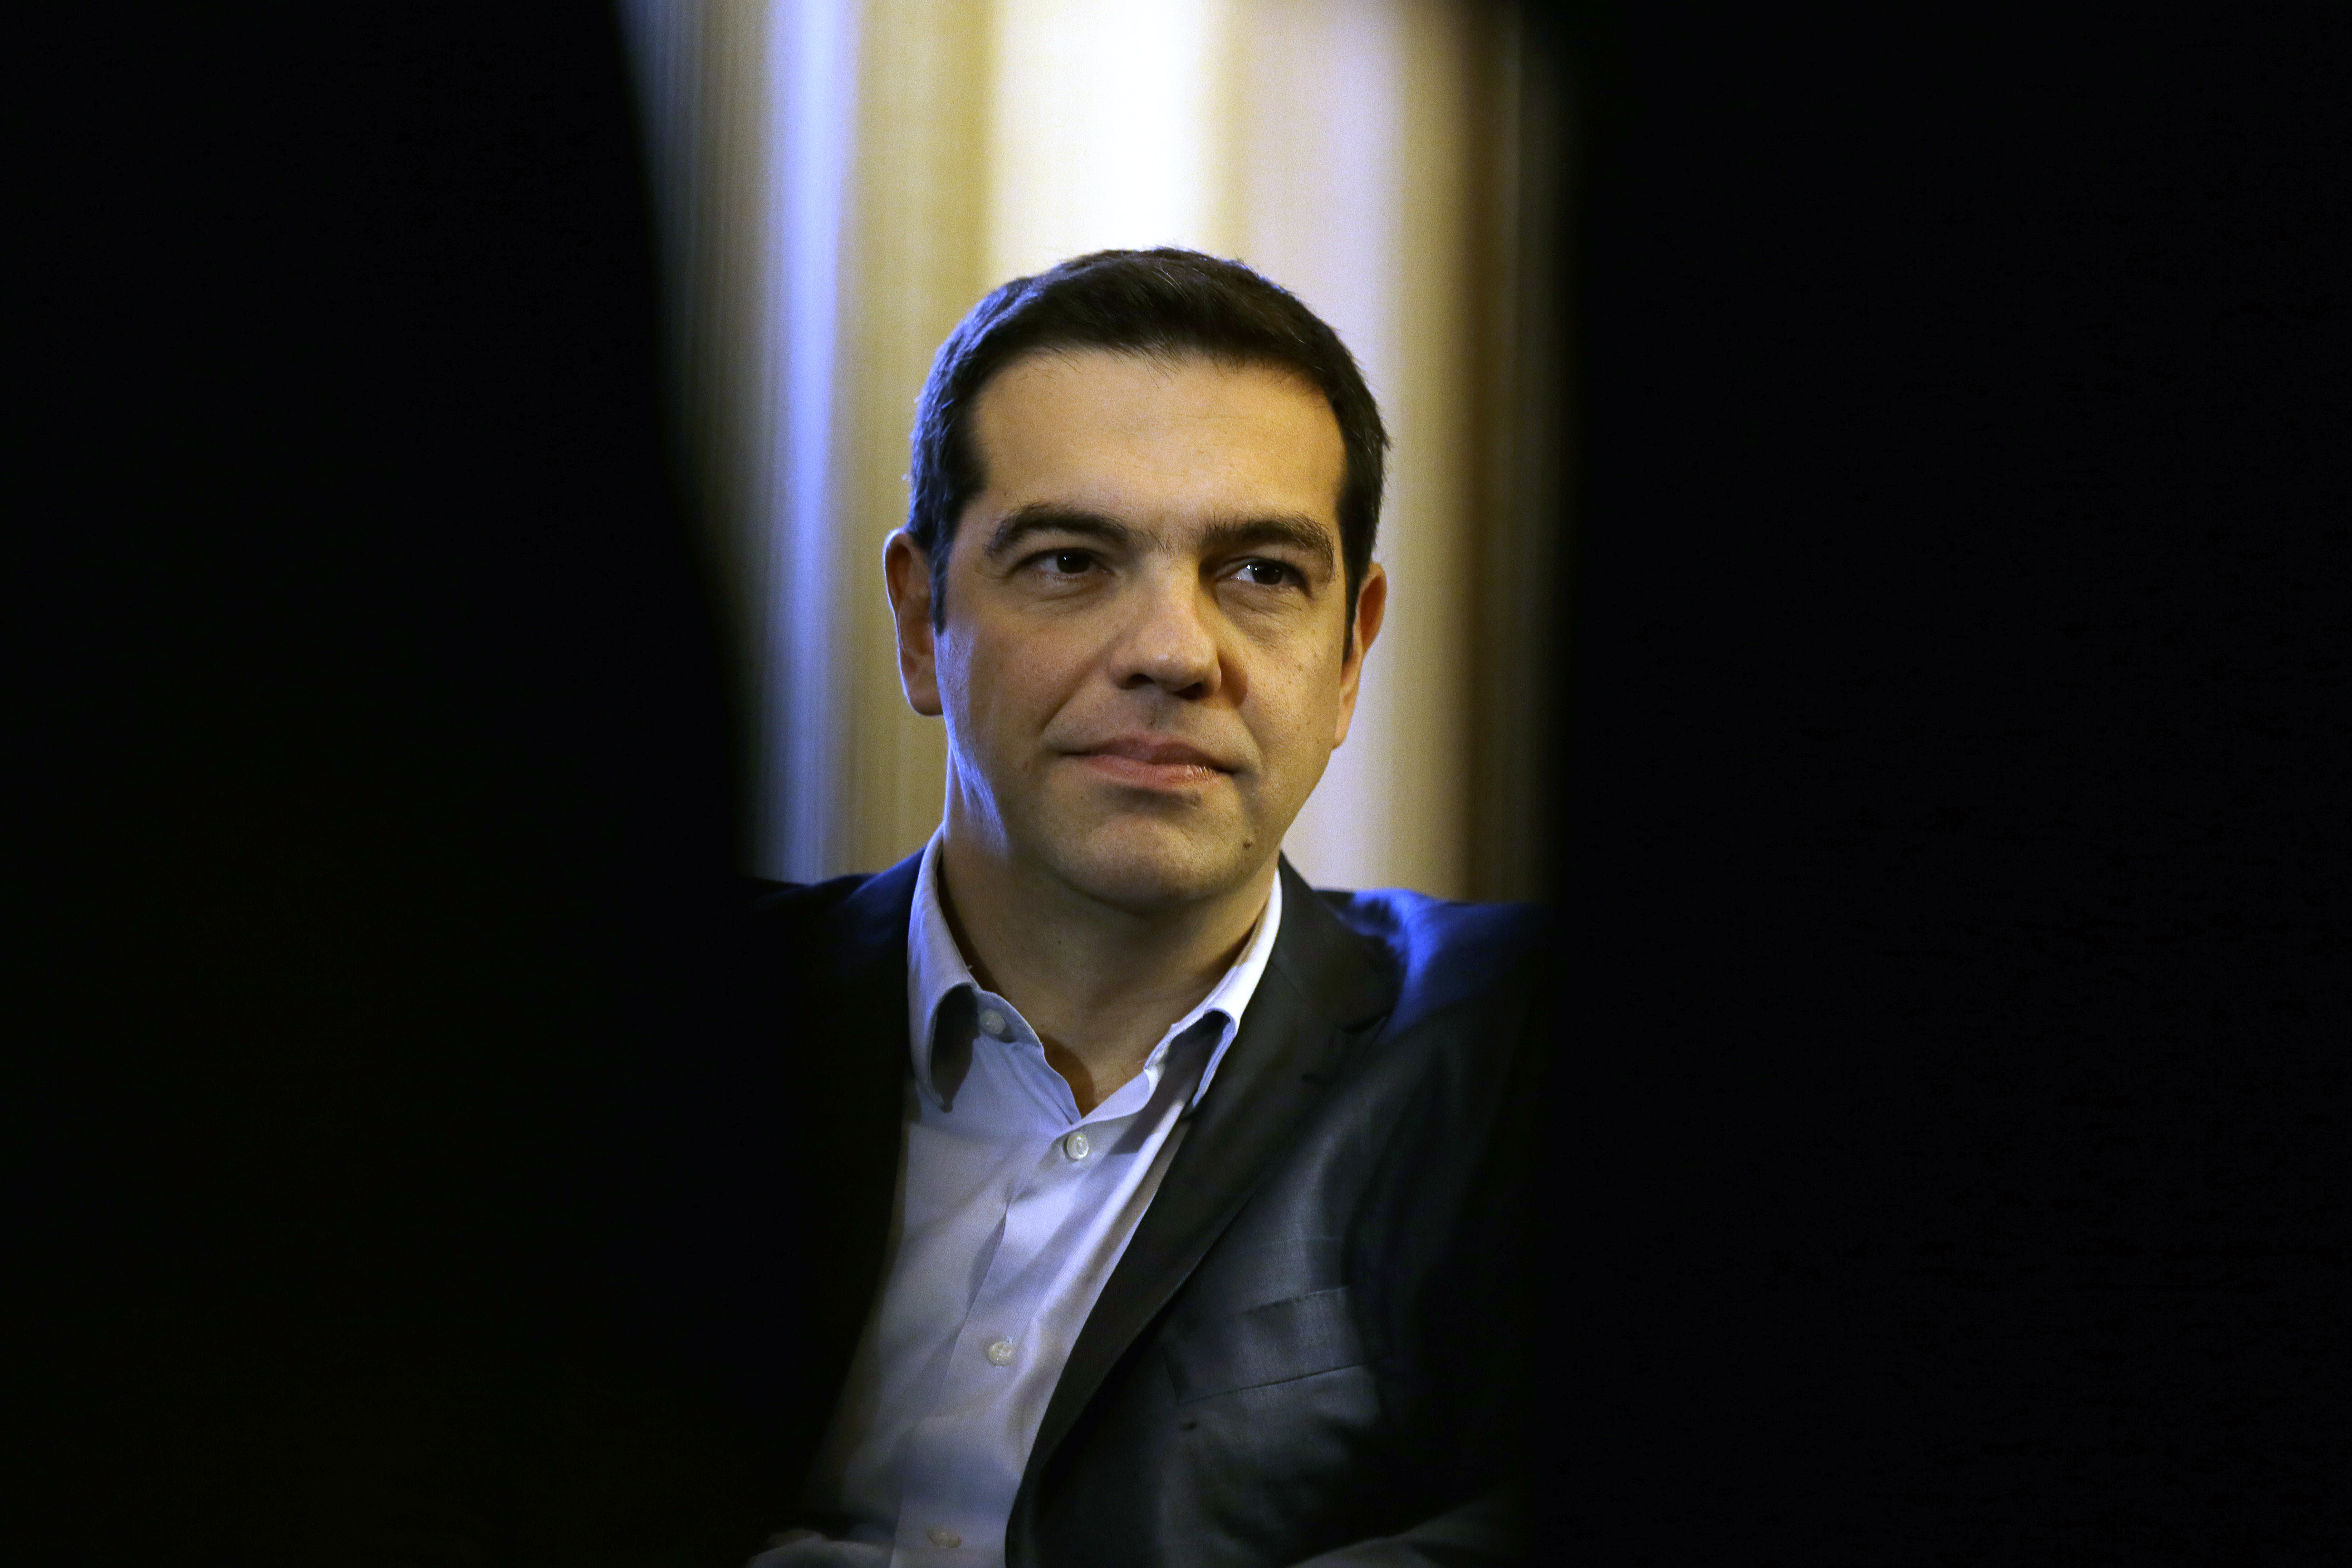 Greece Prime Minister Alexis Tsipras listens to Greek President Karolos Papoulias during their meeting at Presidential Palace in Athens, Greece on Feb. 18, 2015.